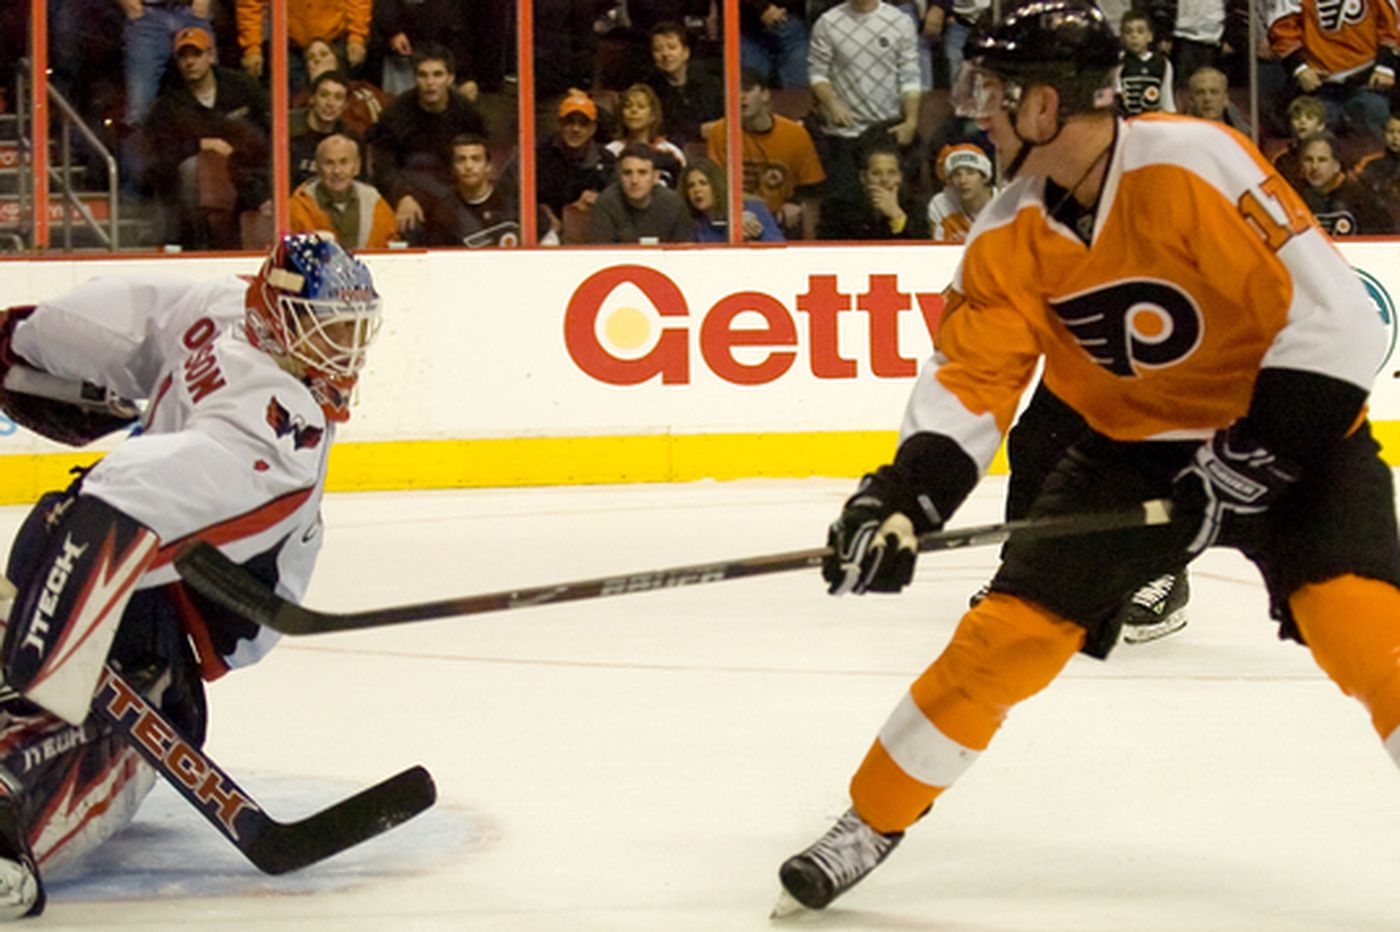 Right knee injury sidelines Flyers winger Upshall